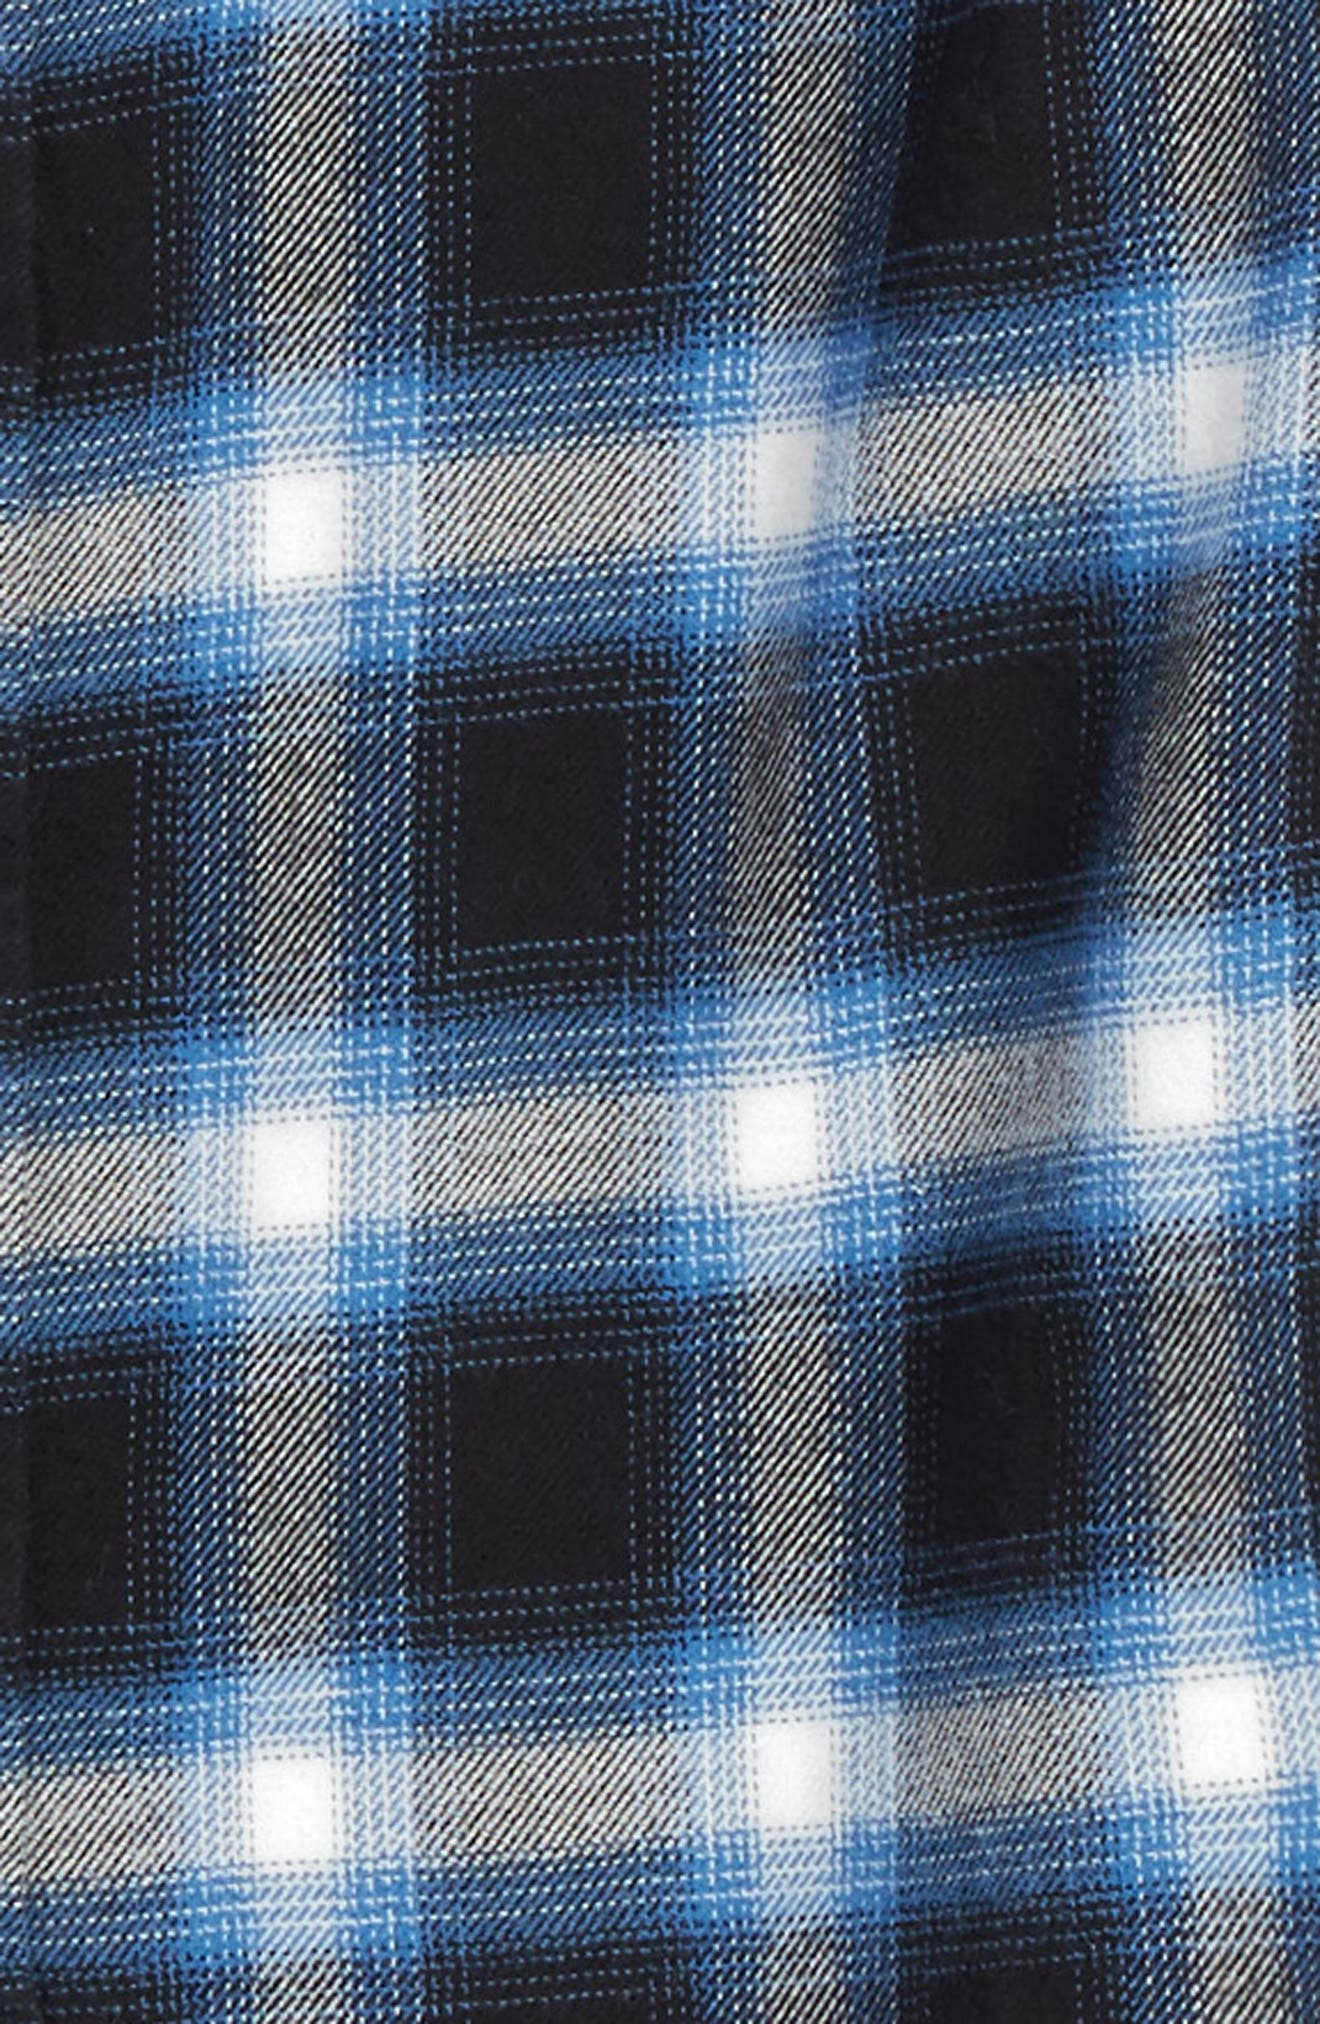 Beechwood Plaid Flannel Shirt,                             Alternate thumbnail 2, color,                             001